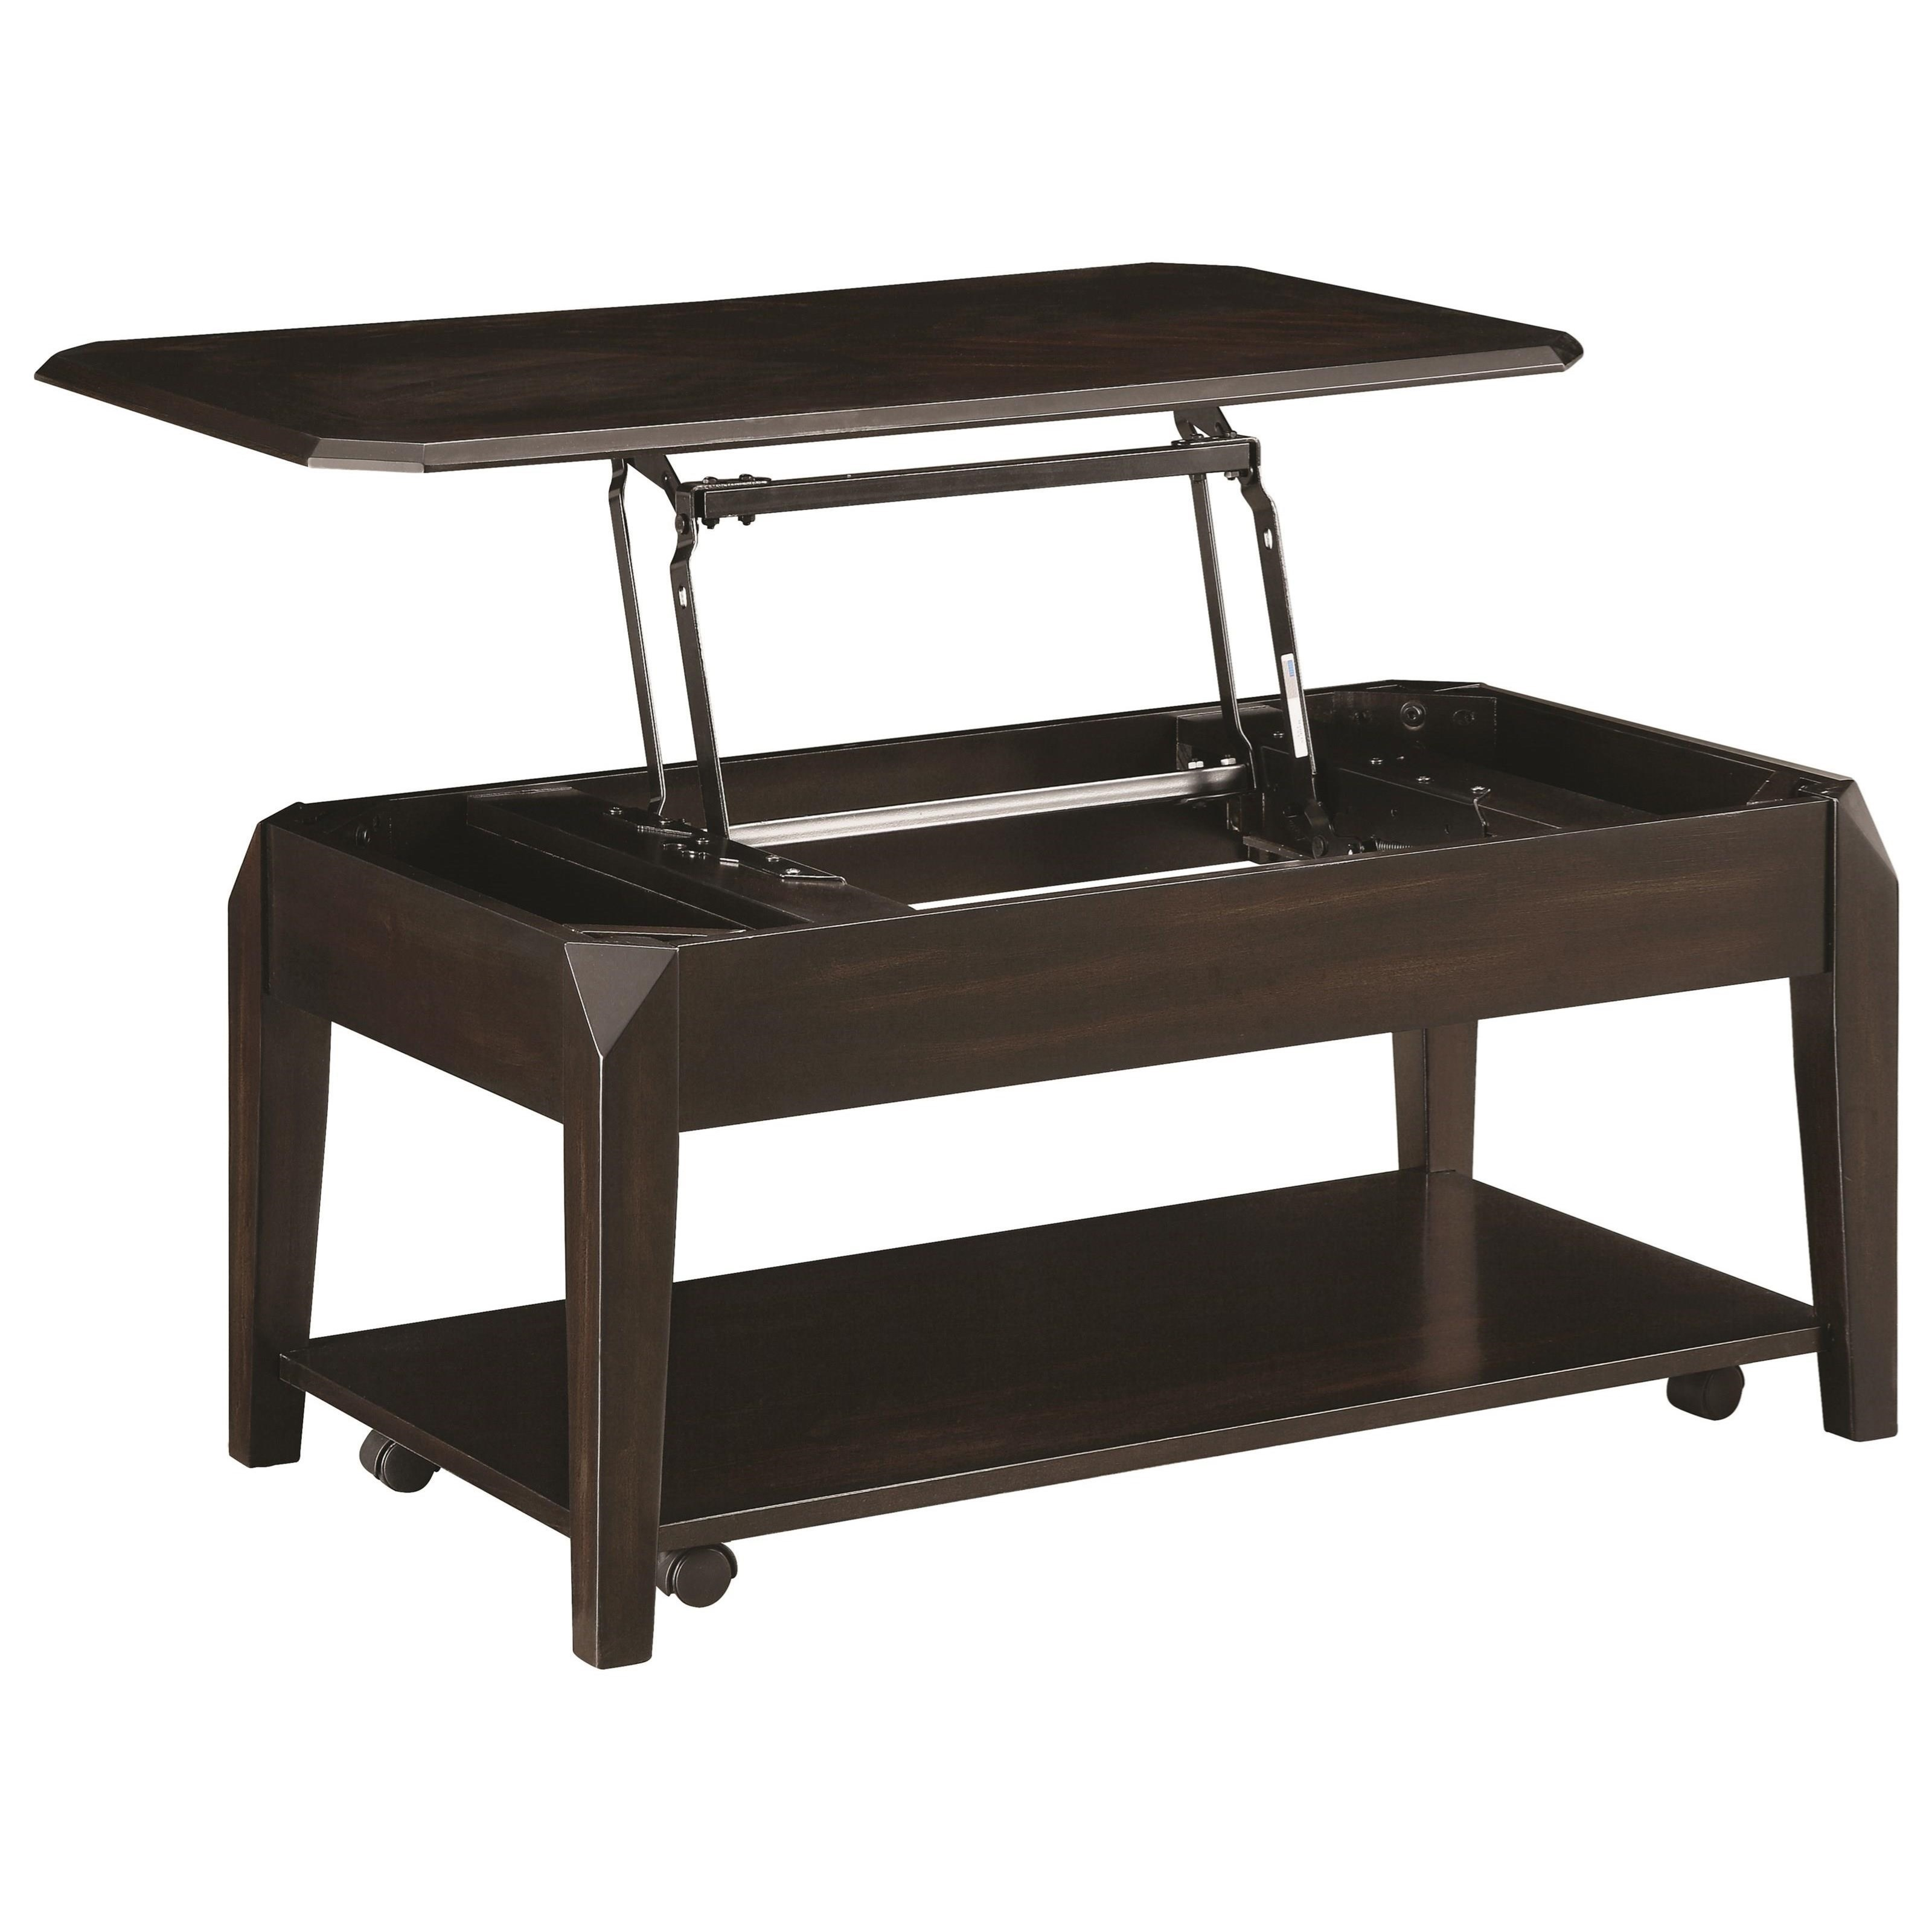 72104 Coffee Table by Coaster at Value City Furniture